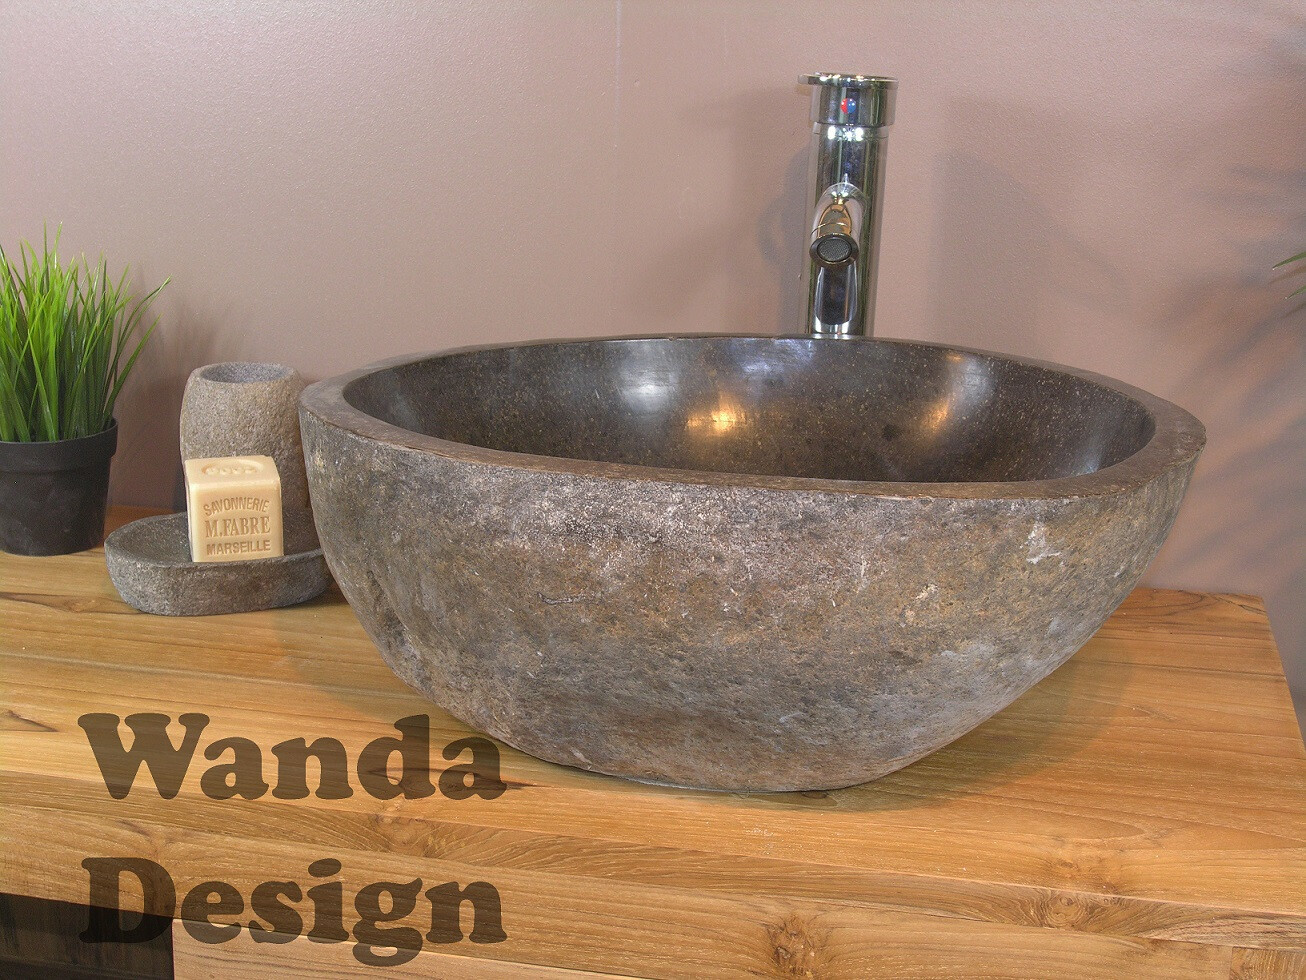 River Stone Sinks Natural Stone Wash Basin By Lux4home Media Photos And Videos 5 Archello